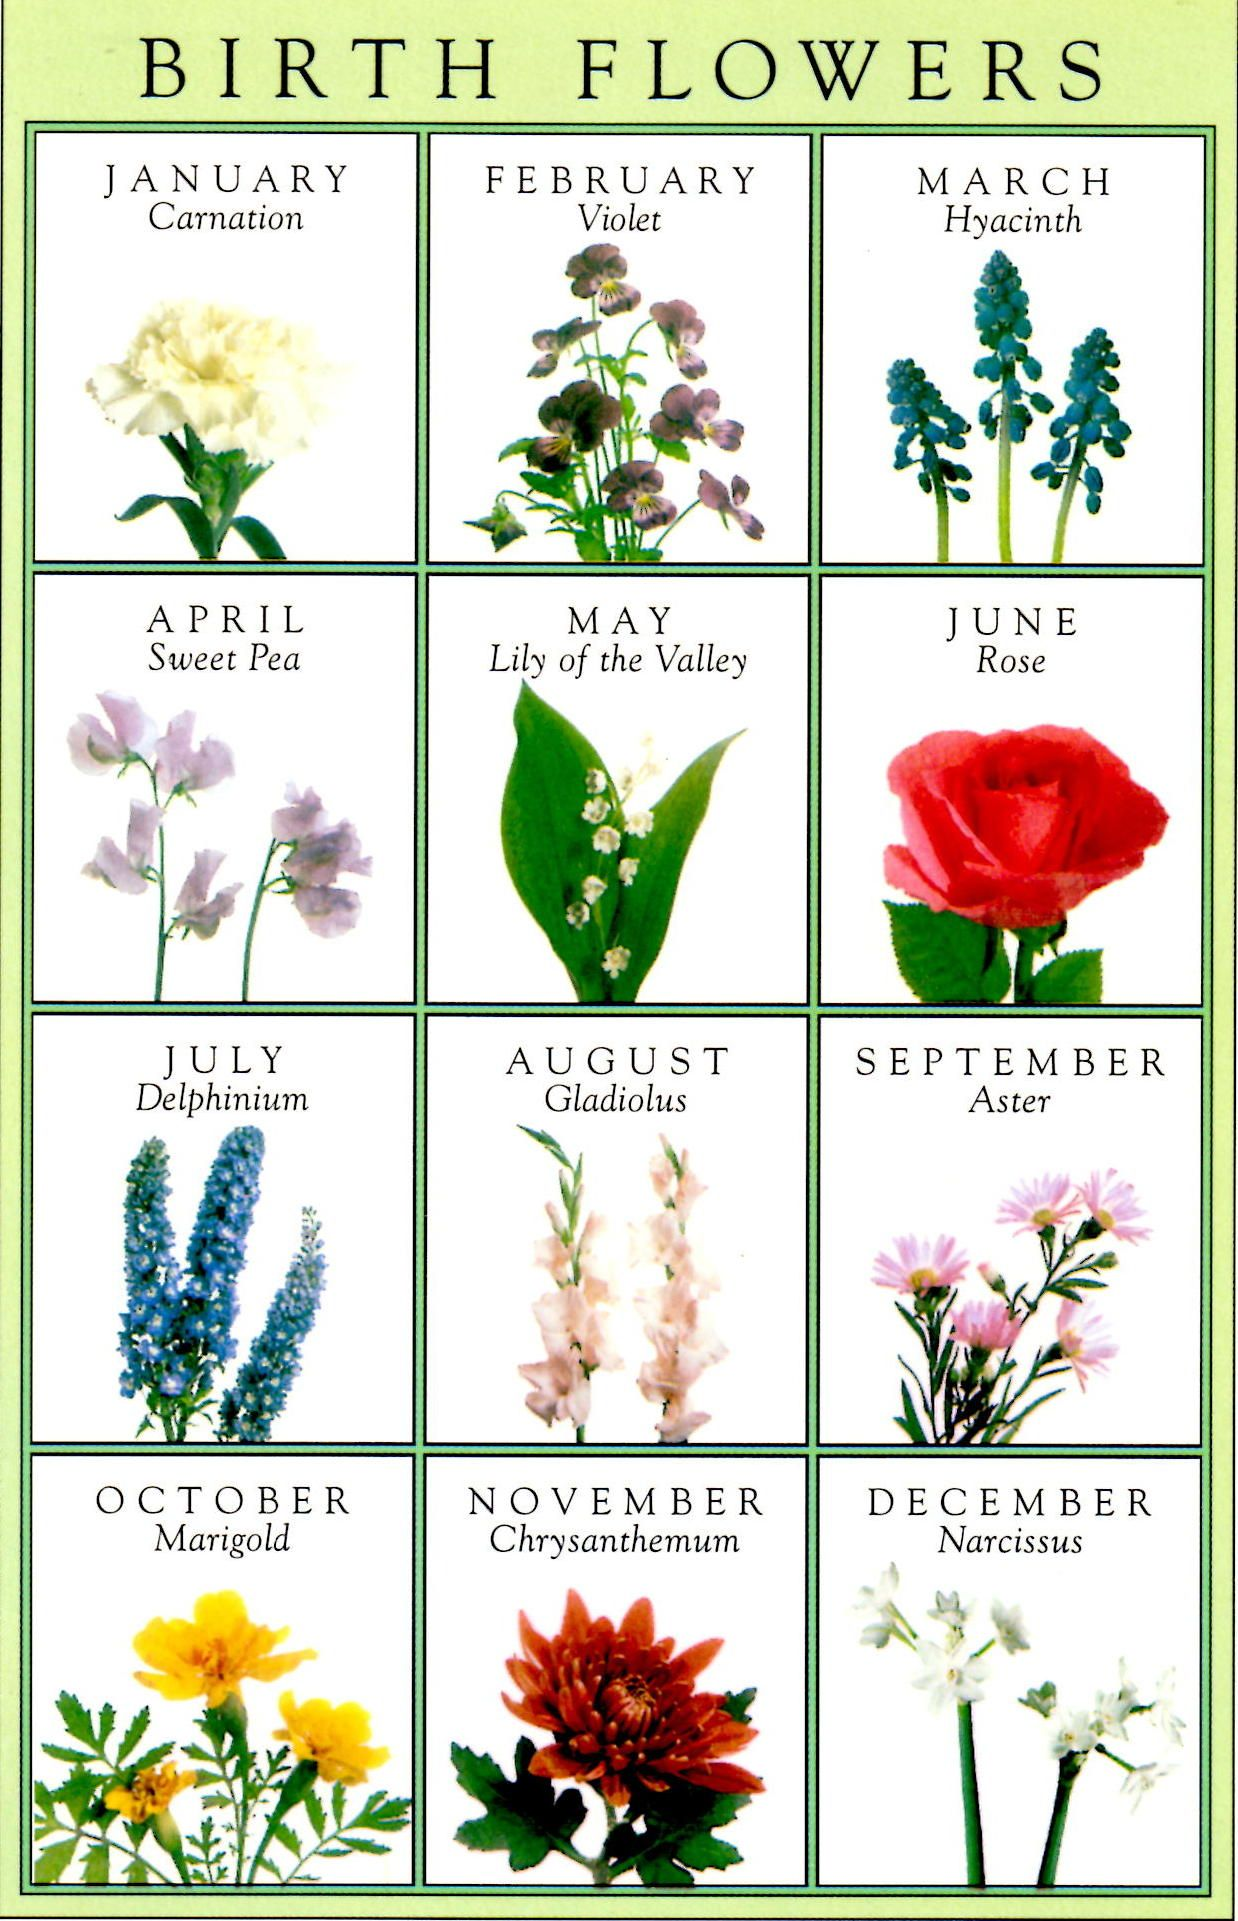 More Pictures Of Birth Flowers Mollie Wren Wren Whittingham I Think It S Time To Plan Our Tattoos Birth Month Flowers Birth Flower Tattoos May Birth Flowers